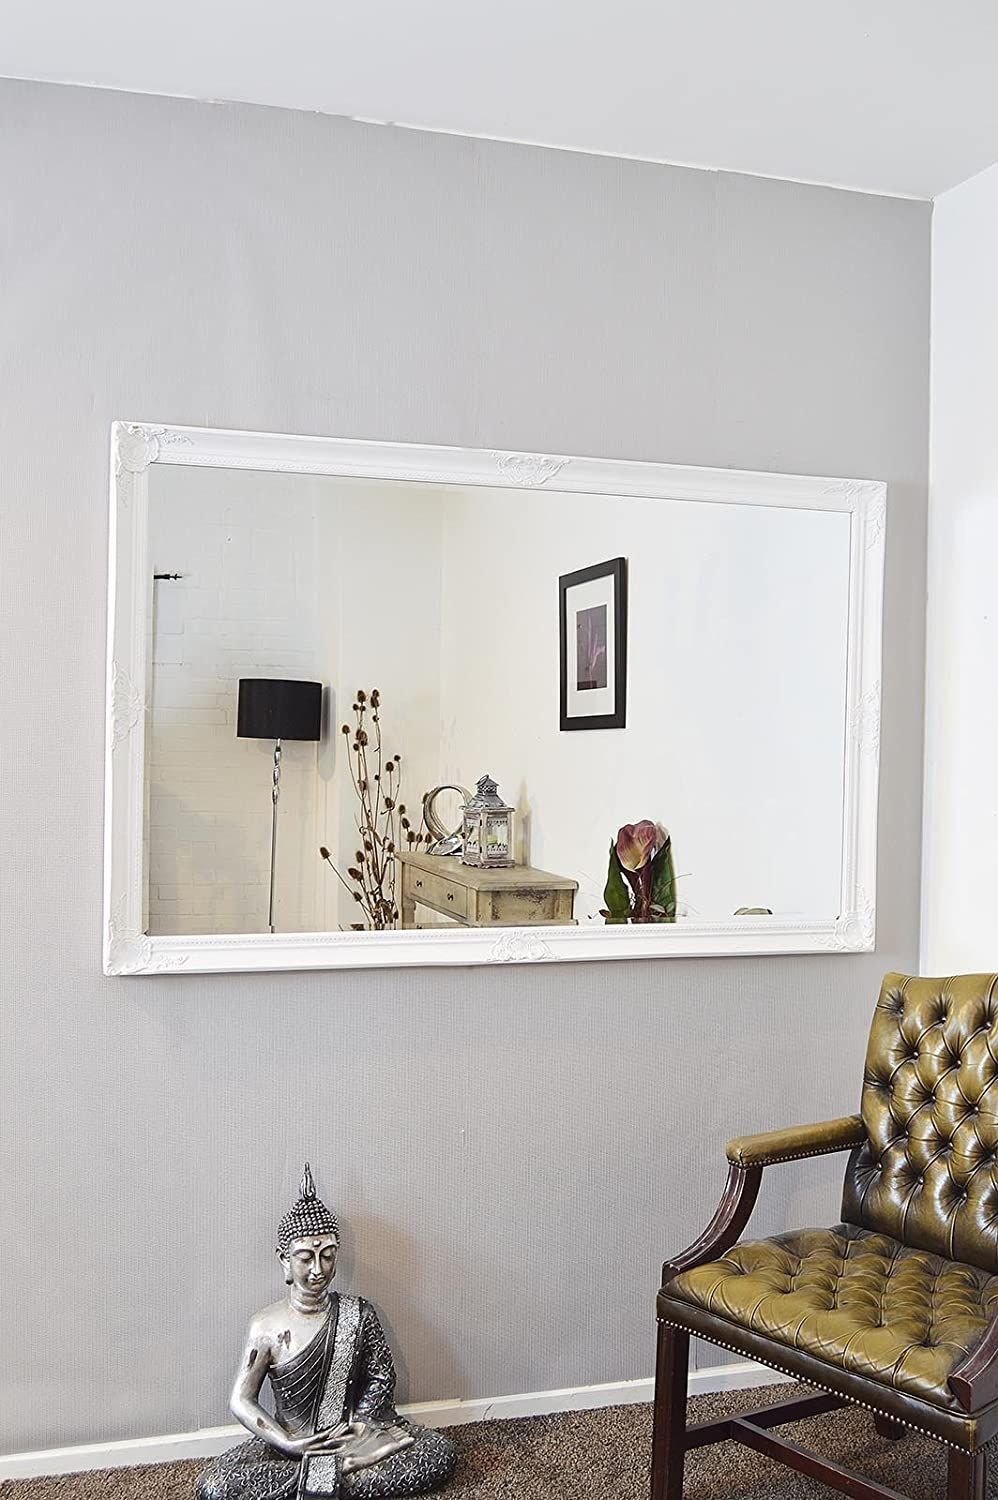 extra large white full length antique bevelled wall mirror 5ft6x3ft6 164cmx102cm amazoncouk kitchen u0026 home